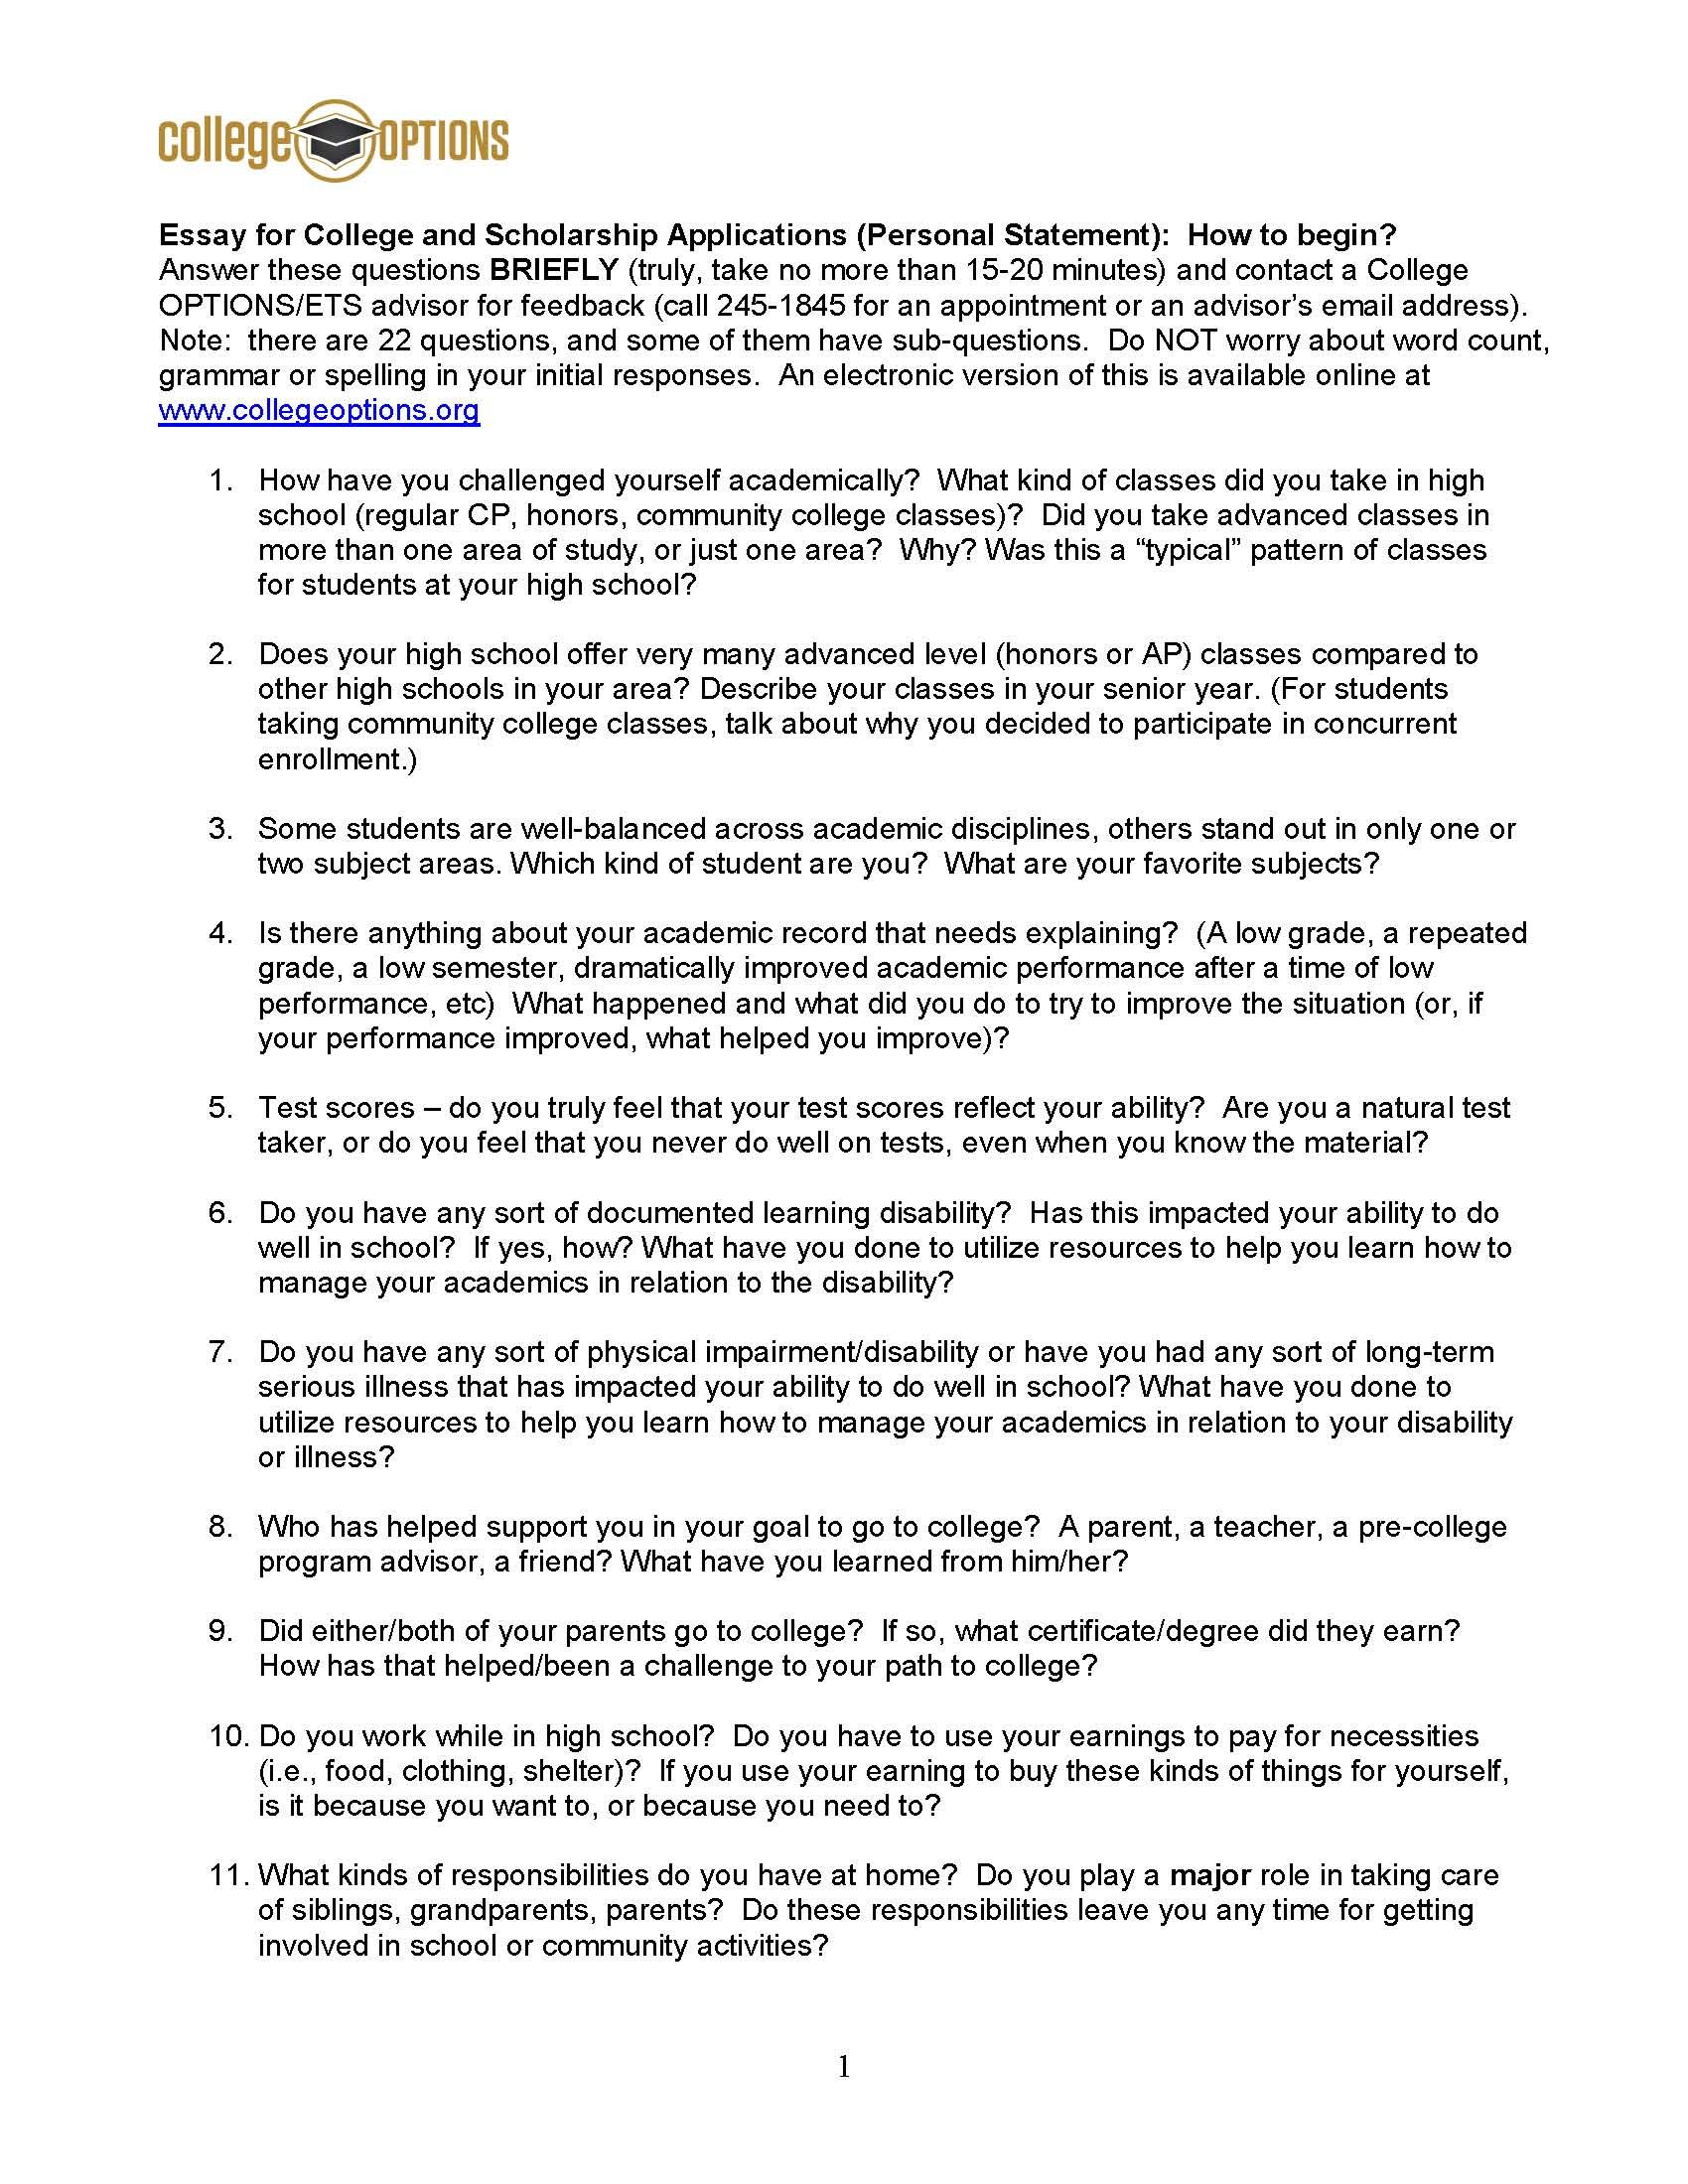 College Options Tips For Writing Your Scholarship